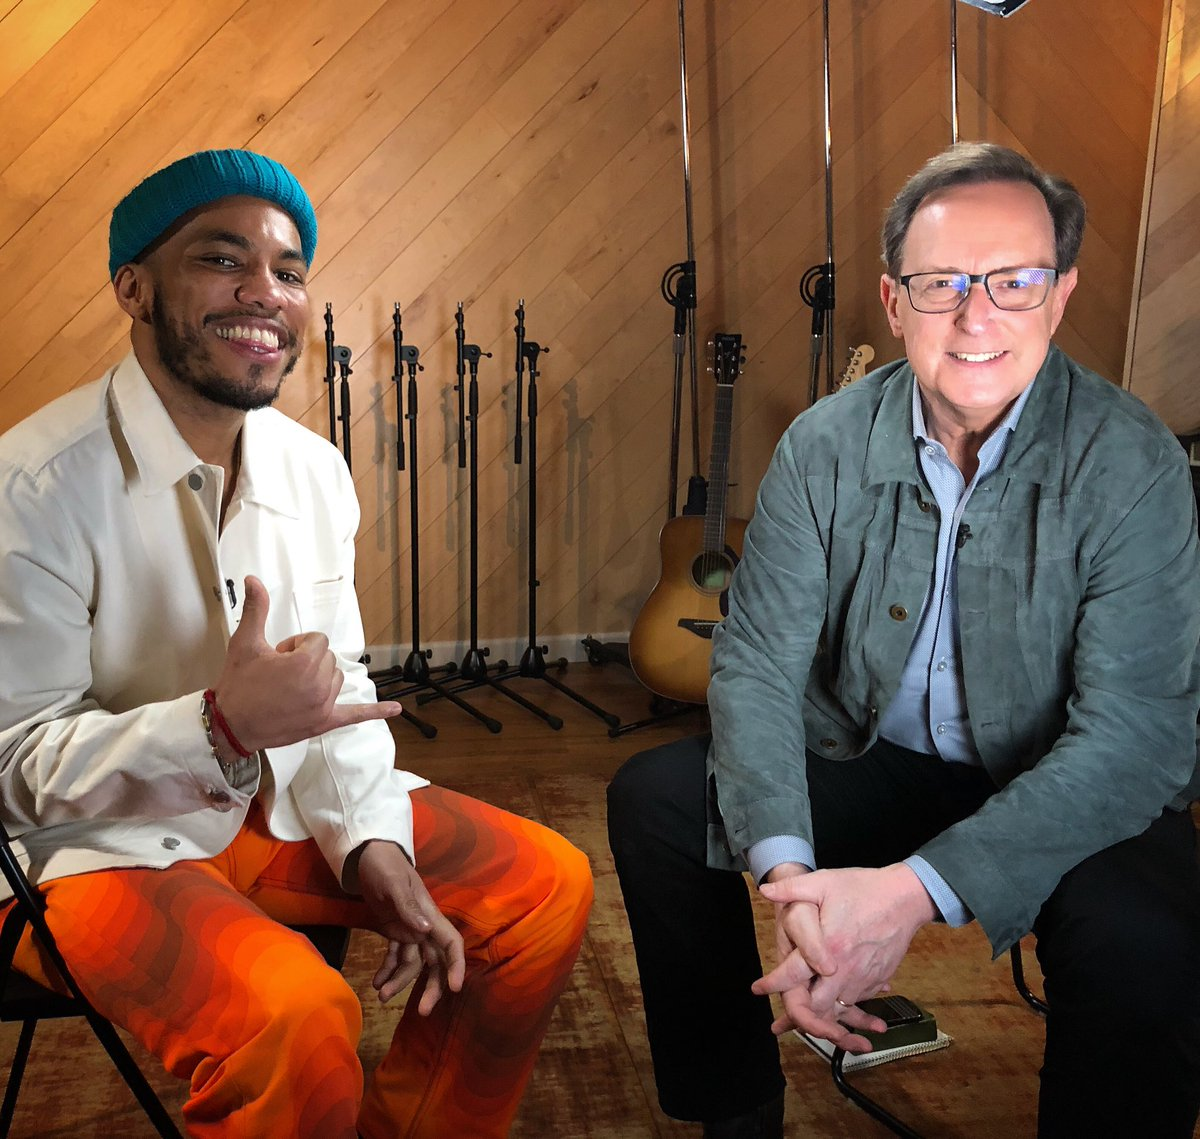 He plays @TheGarden next week. But first #Grammy winner @AndersonPaak joins us for #SaturdaySessions on @CBSThisMorning Saturday